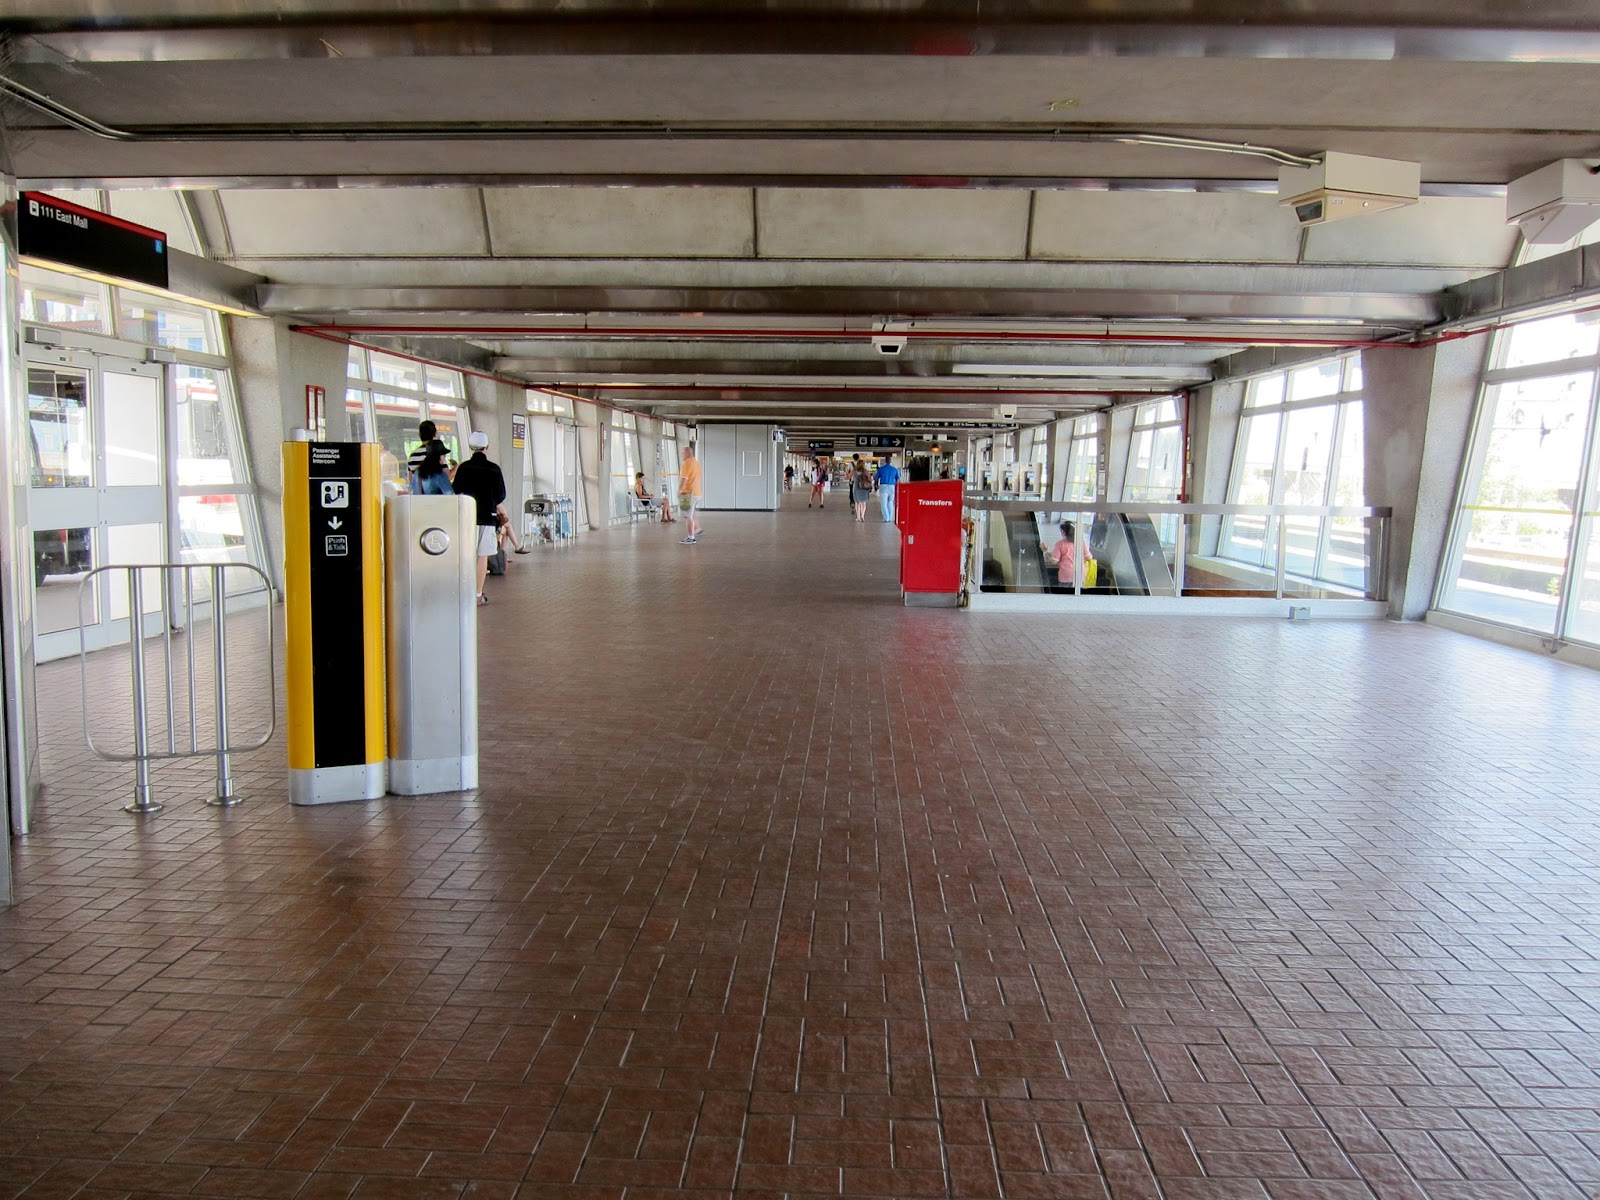 Photo: Kipling station bus level hall